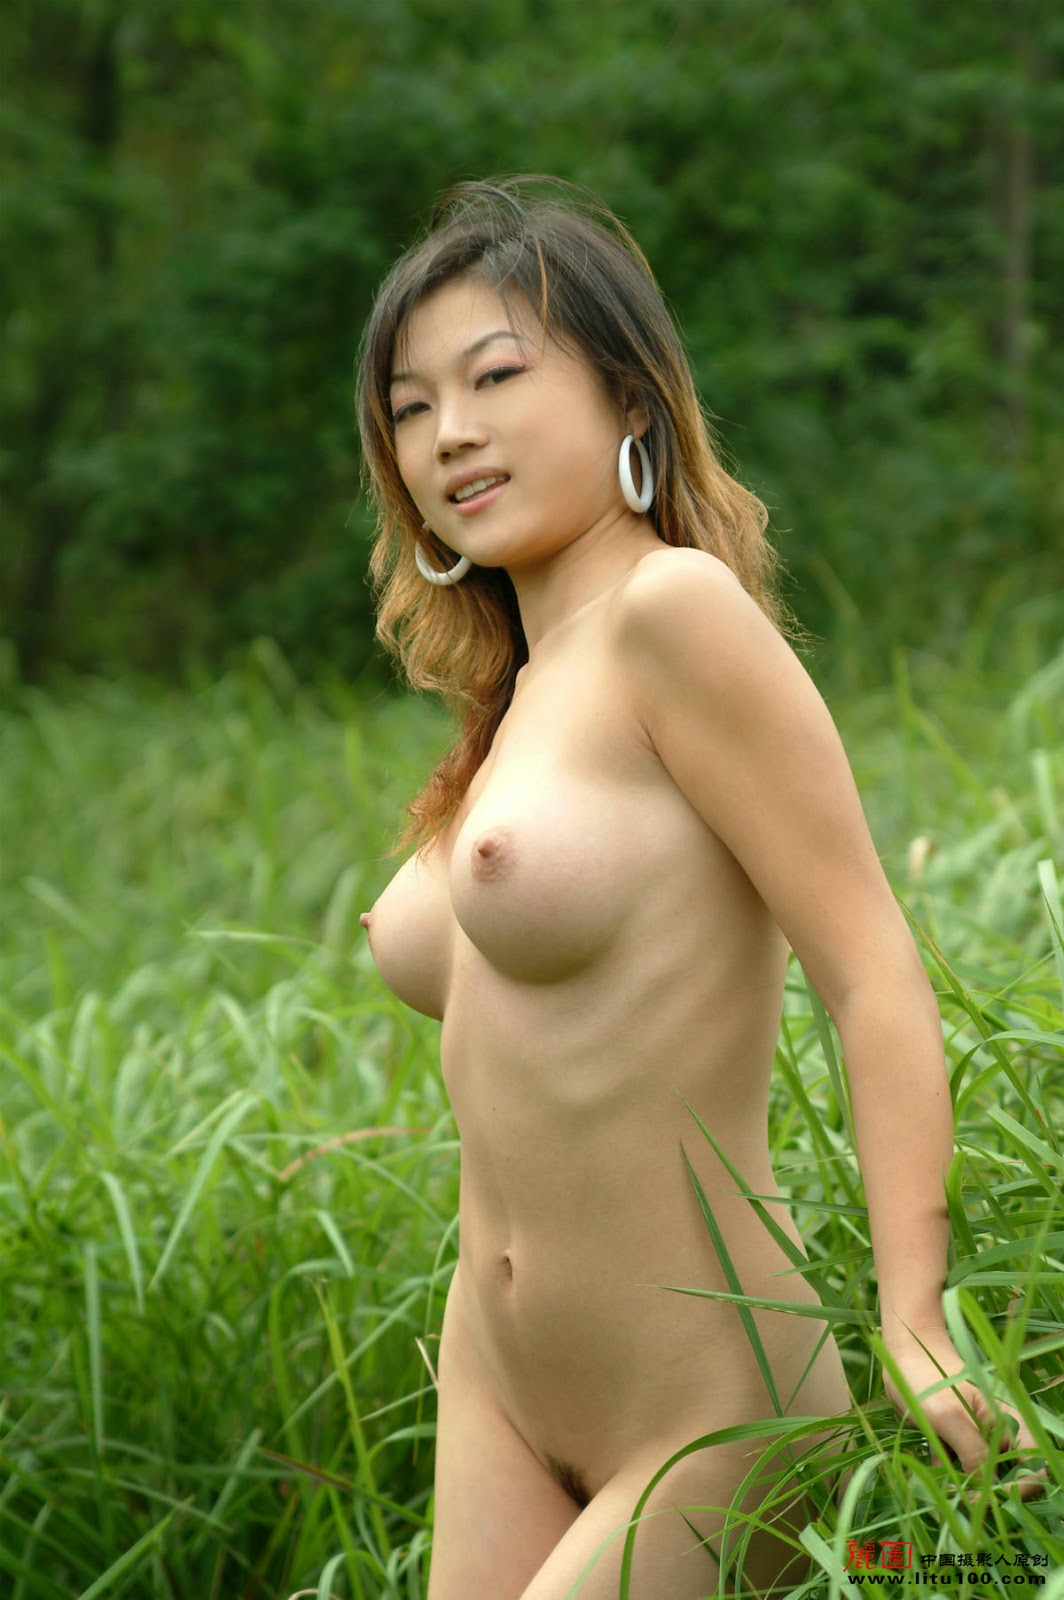 litu100 Chinese naked model Yu Hui litu 100 18+ gallery collection